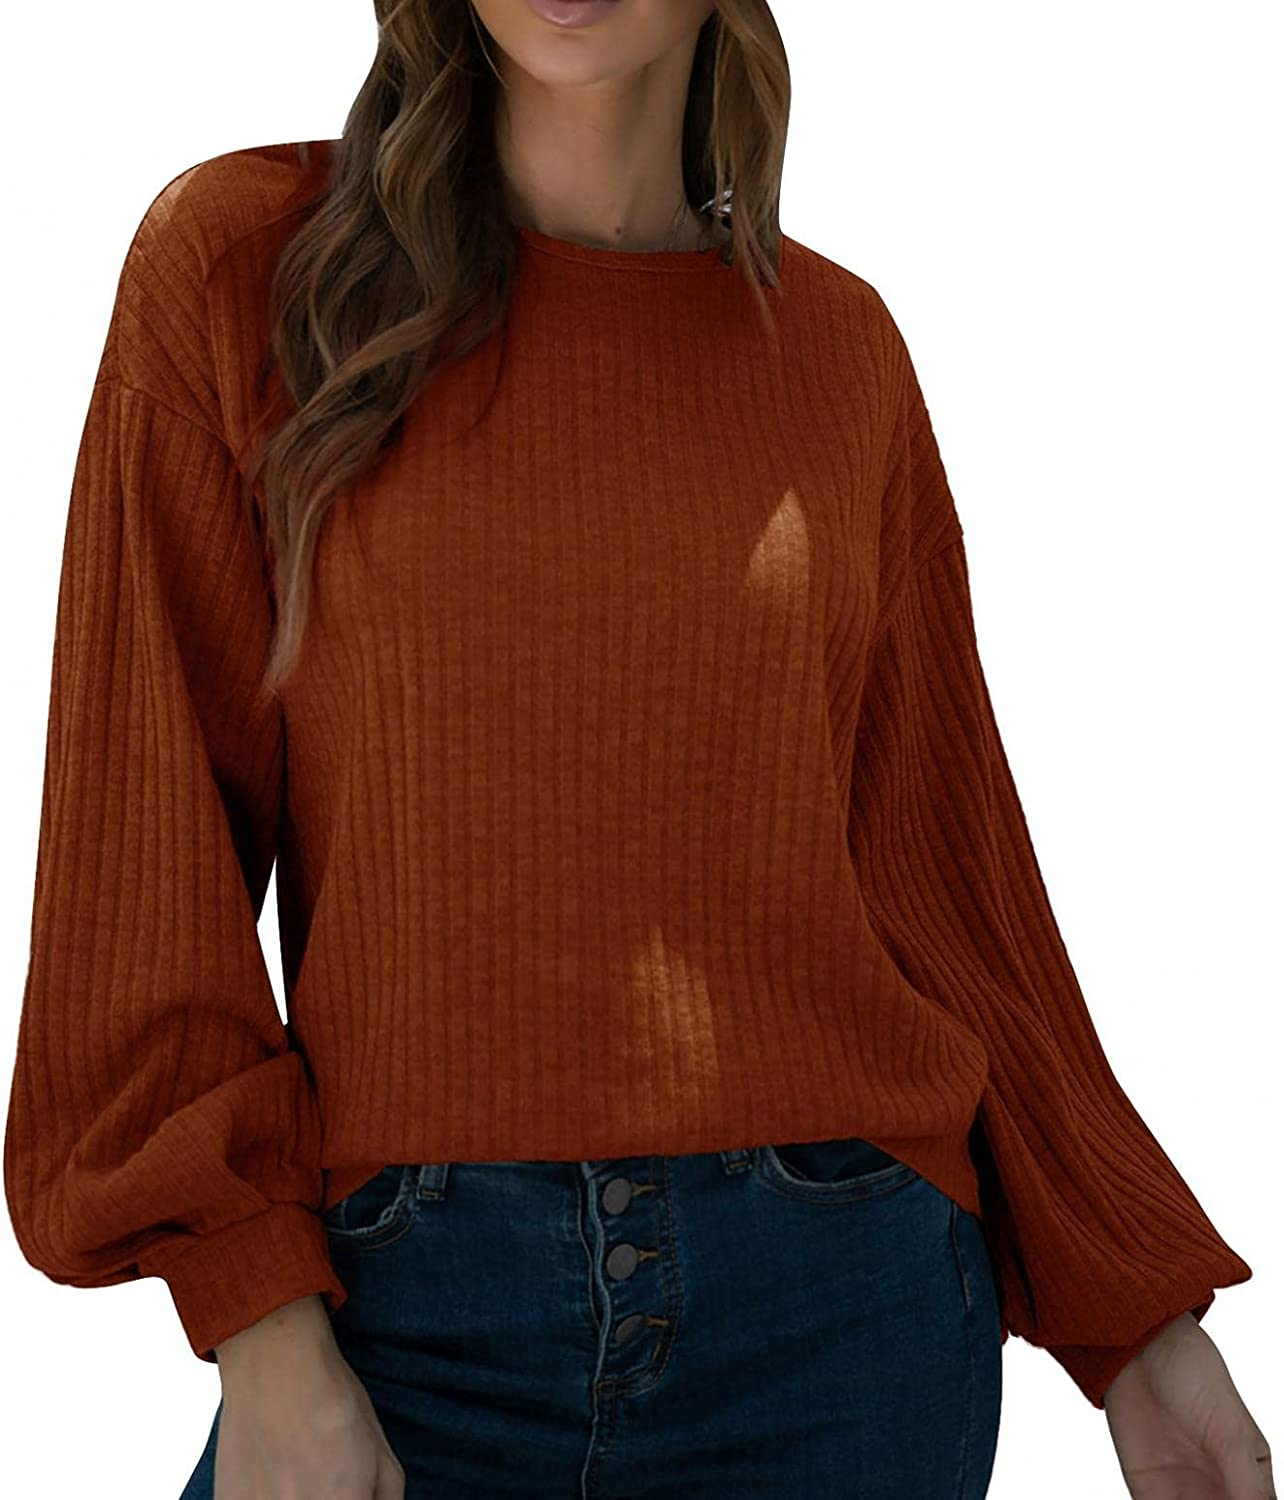 Hemlock Women Slim Sweaters Solid Color Knit Tops Autumn Long Sleeve Pullover Jumper Blouse